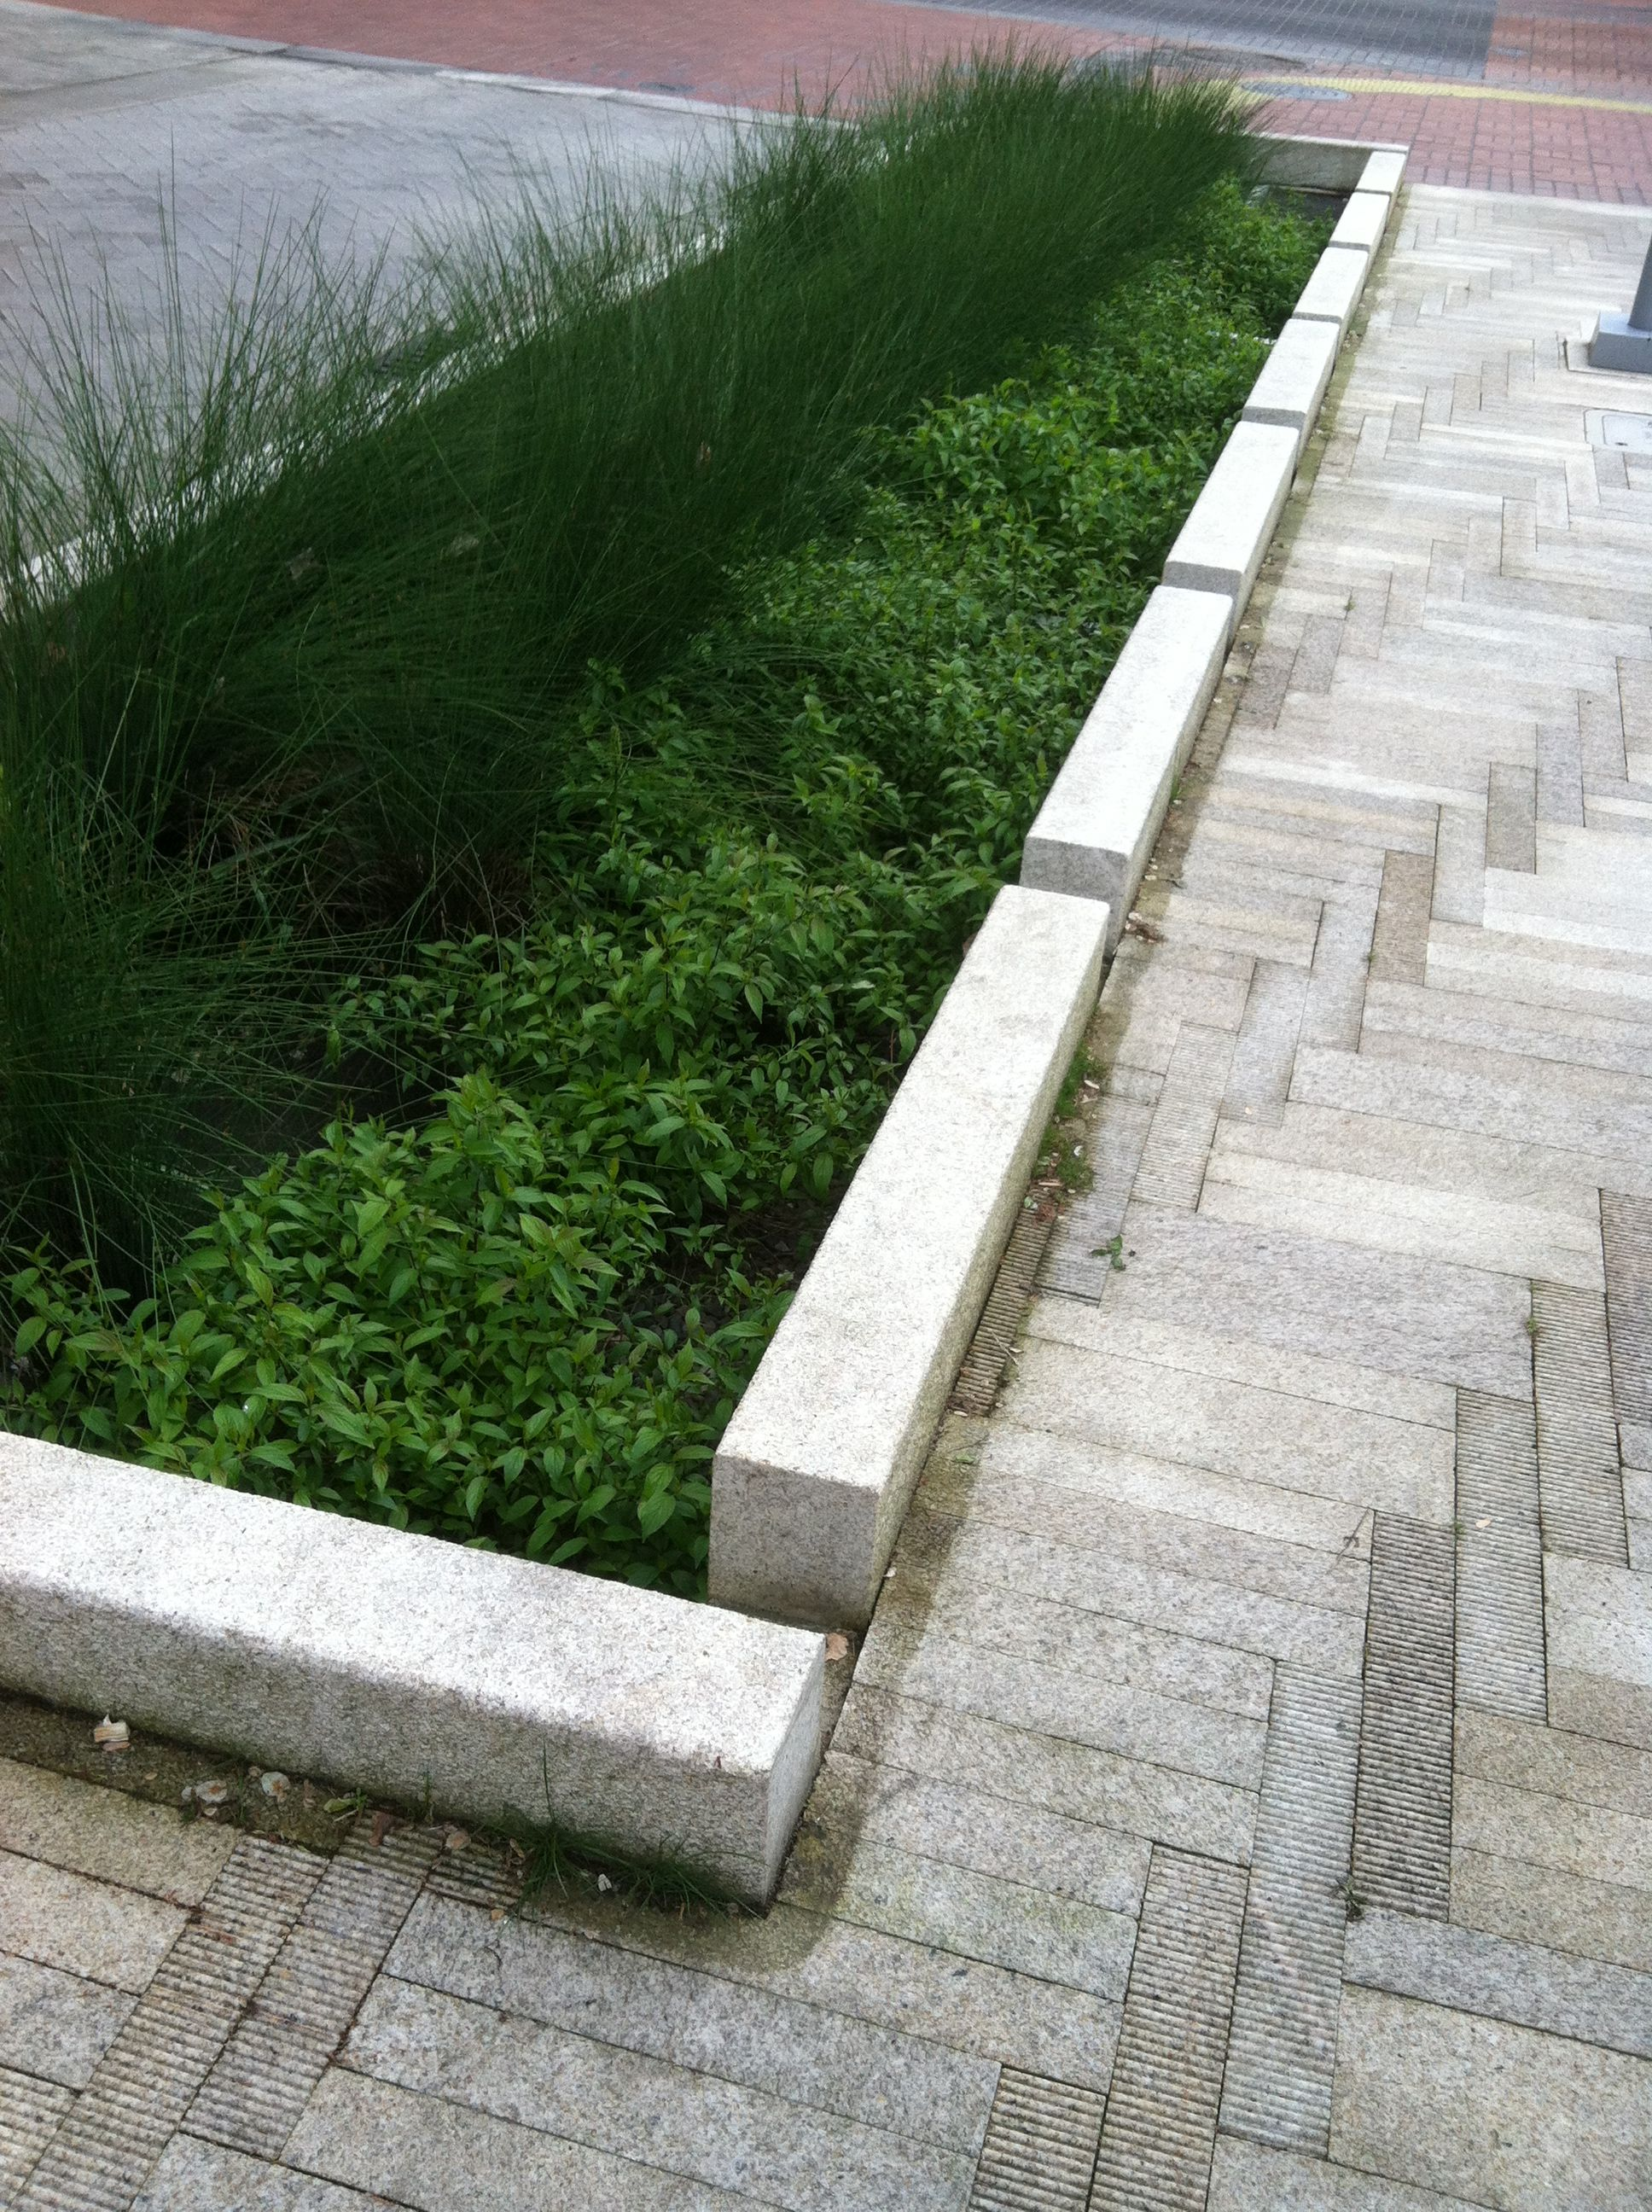 Simple Urban Rain Garden. The Openings In The Curb And